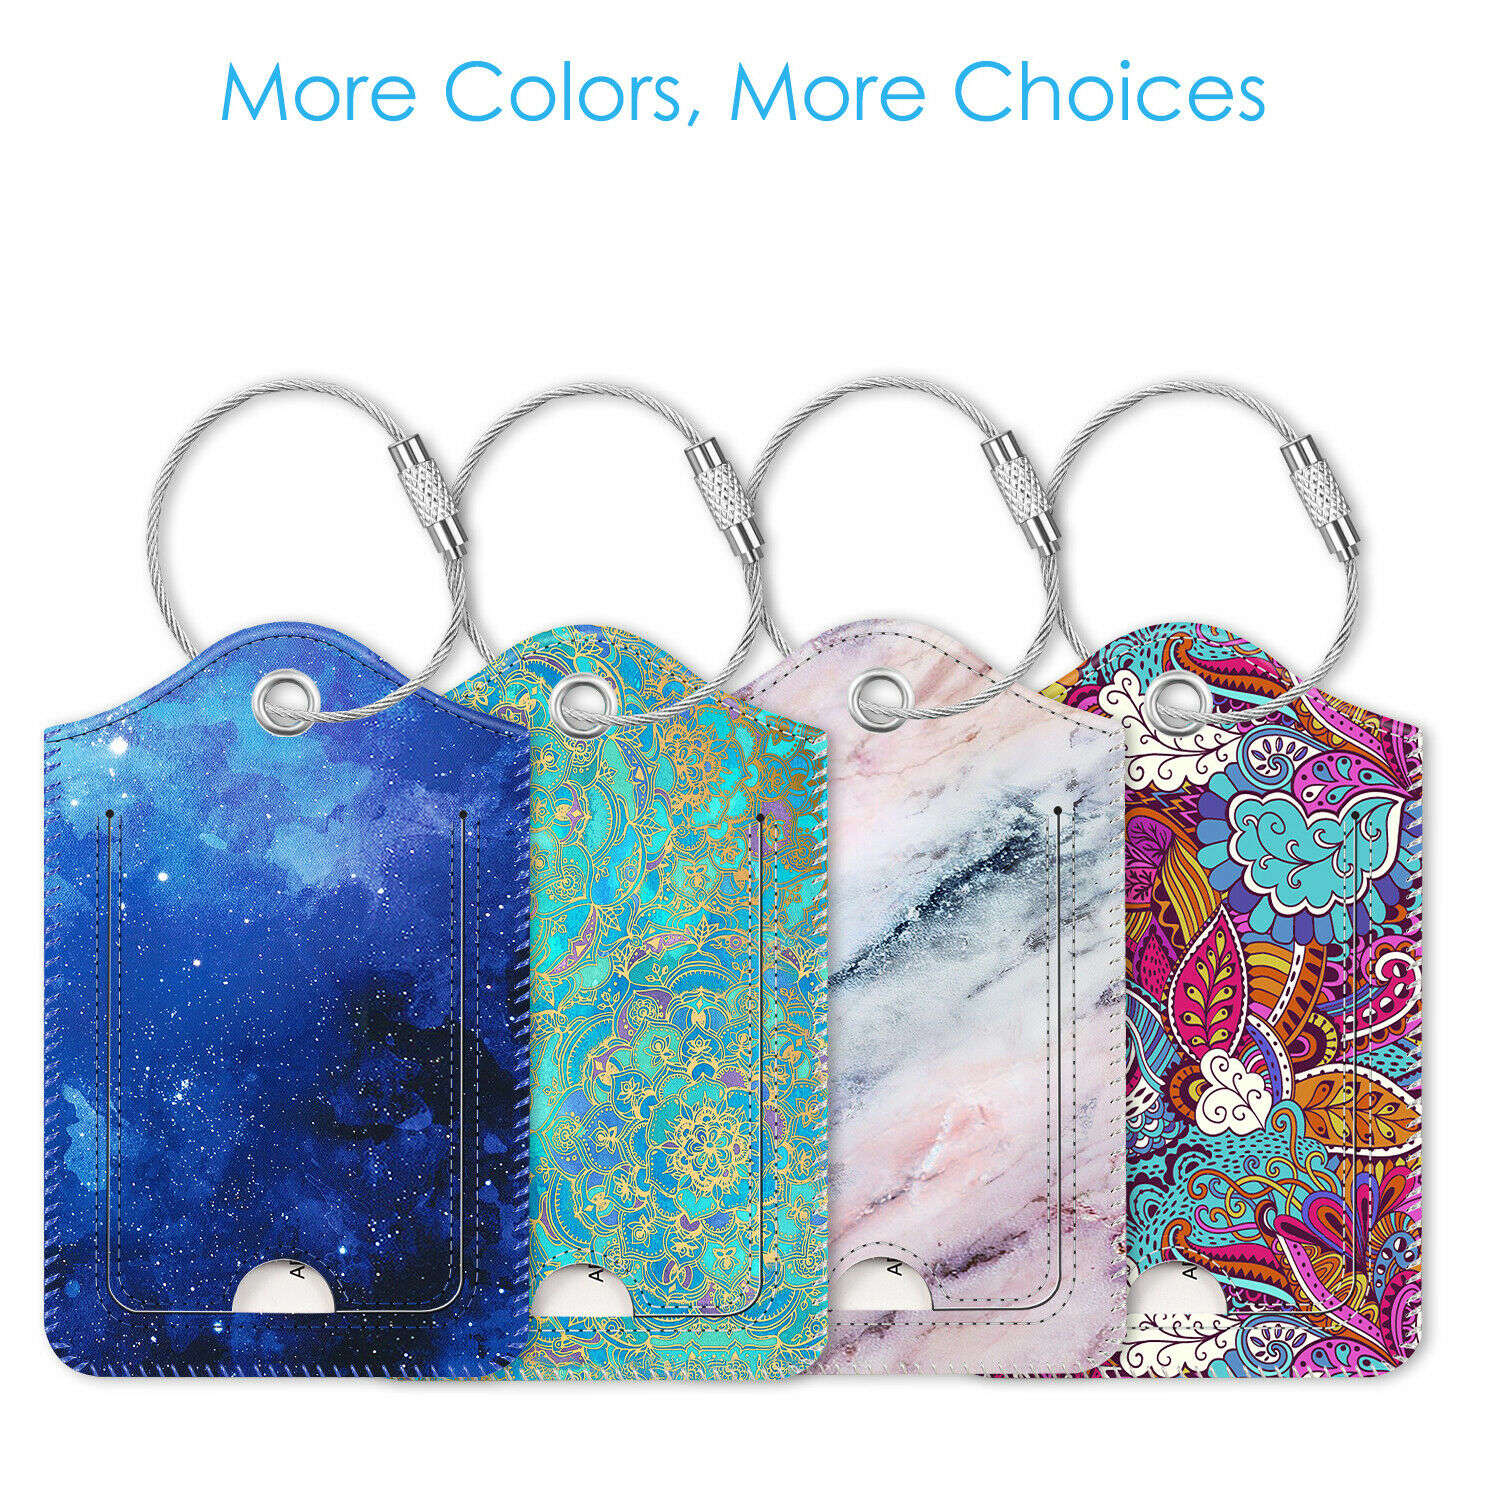 Bears of the world pattern Luggage Tags Suitcase Labels Bag Travel Accessories Set of 2